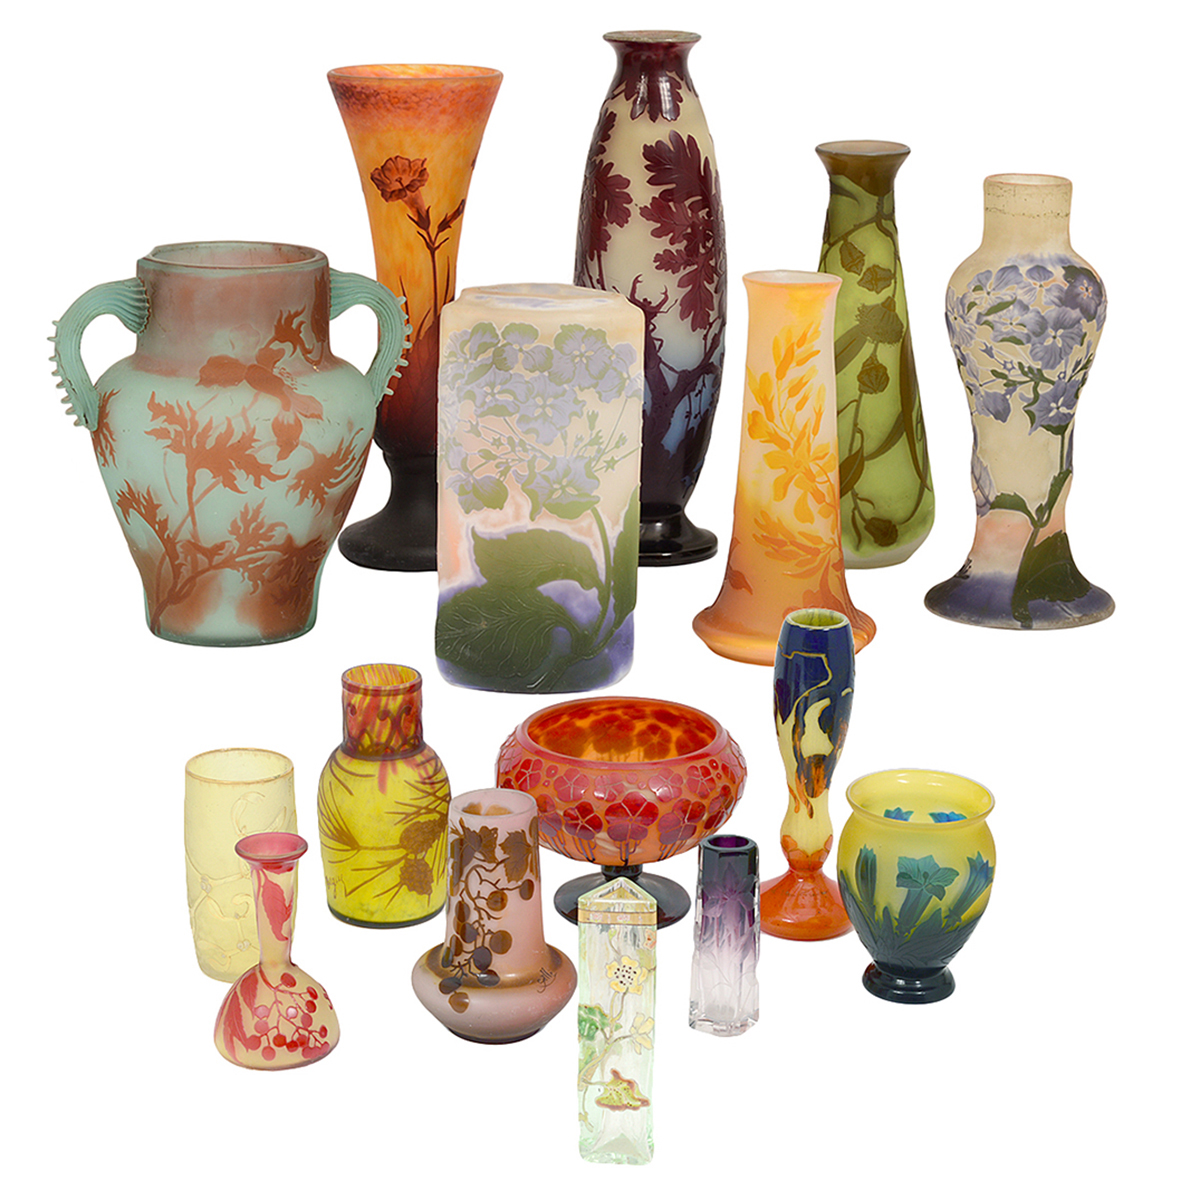 Examples from collection of French cameo and other Art Deco glass to be offered in April 27-28 auction in West Palm Beach, Florida. Auction Gallery of the Palm Beaches image